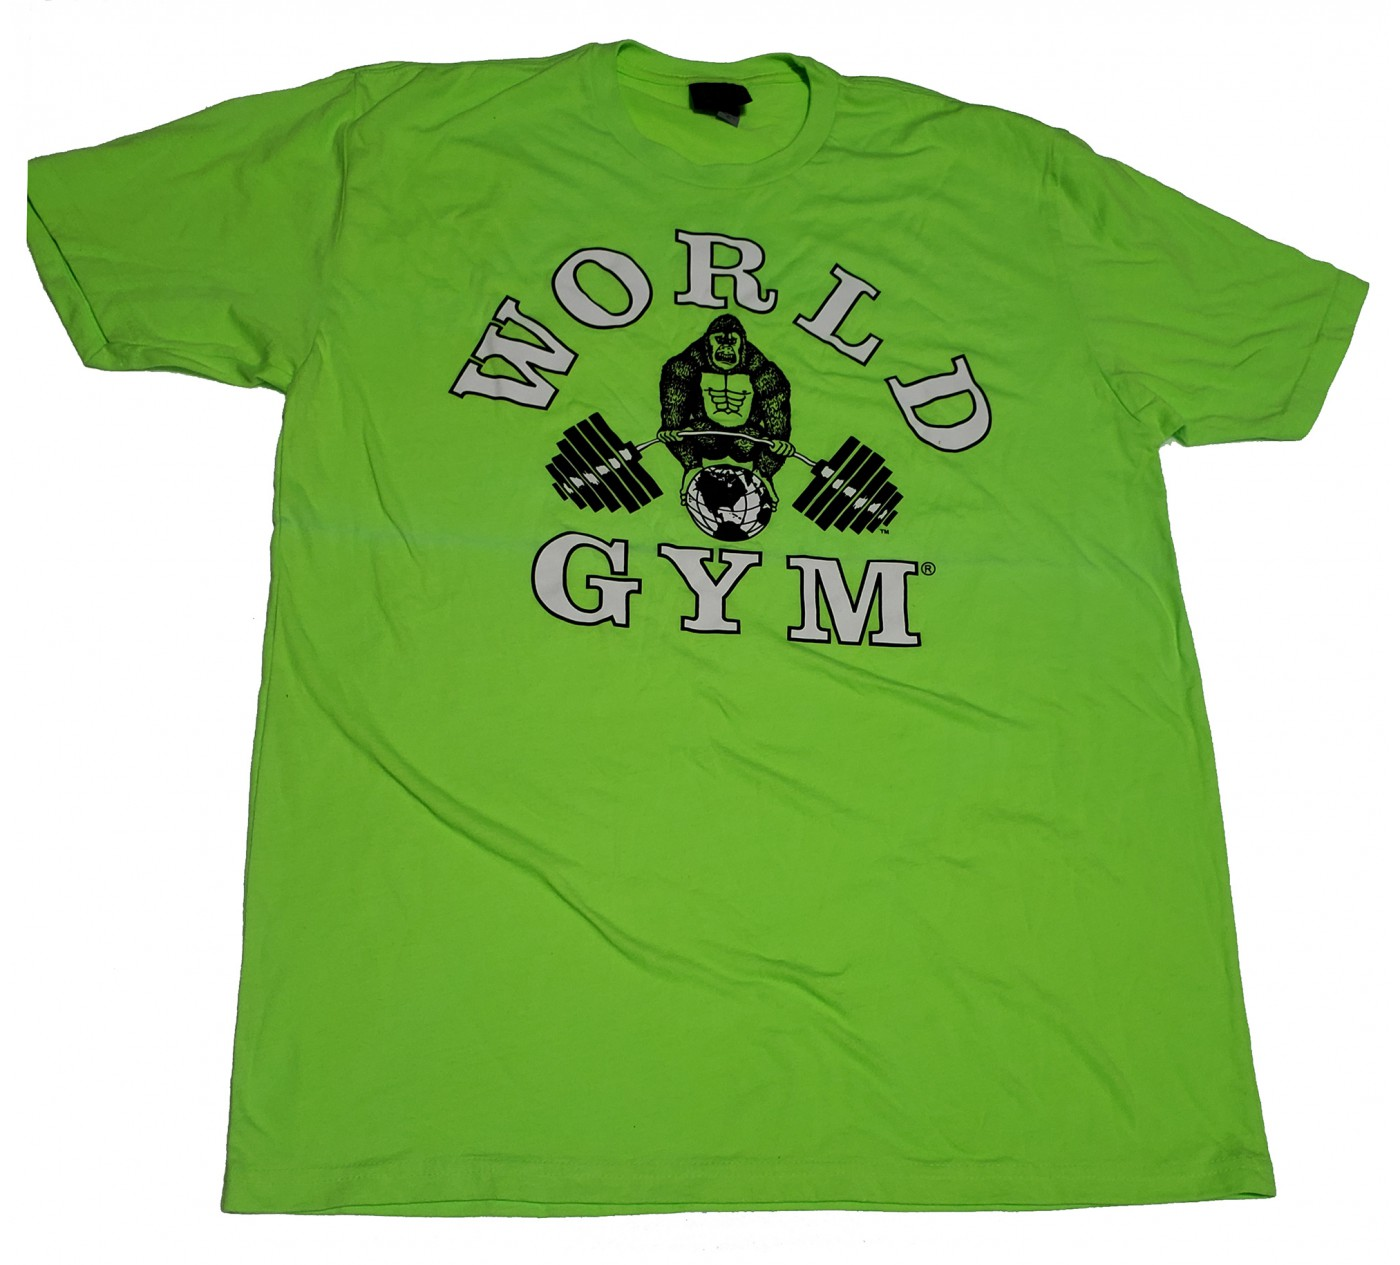 CLOSEOUT -W-015 World Gym shirt (slight sun damage)